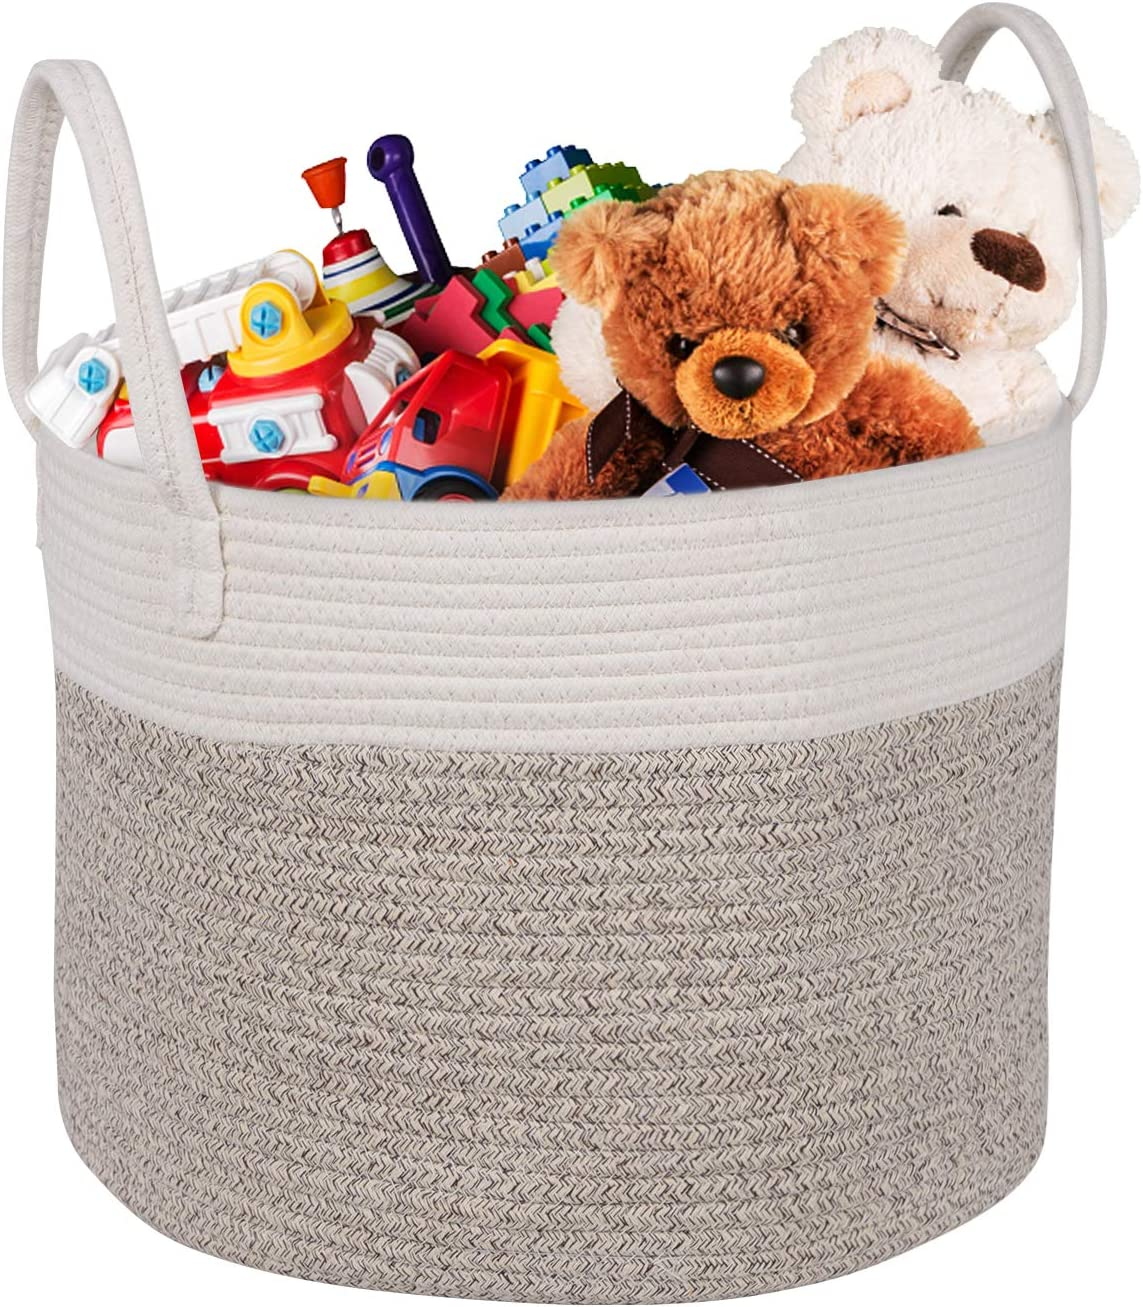 Cotton White-Brown, 38x38x30cm Jooli H Laundry Basket Drawstring Hamper Fabric Collapsible Storage Bin with Handles